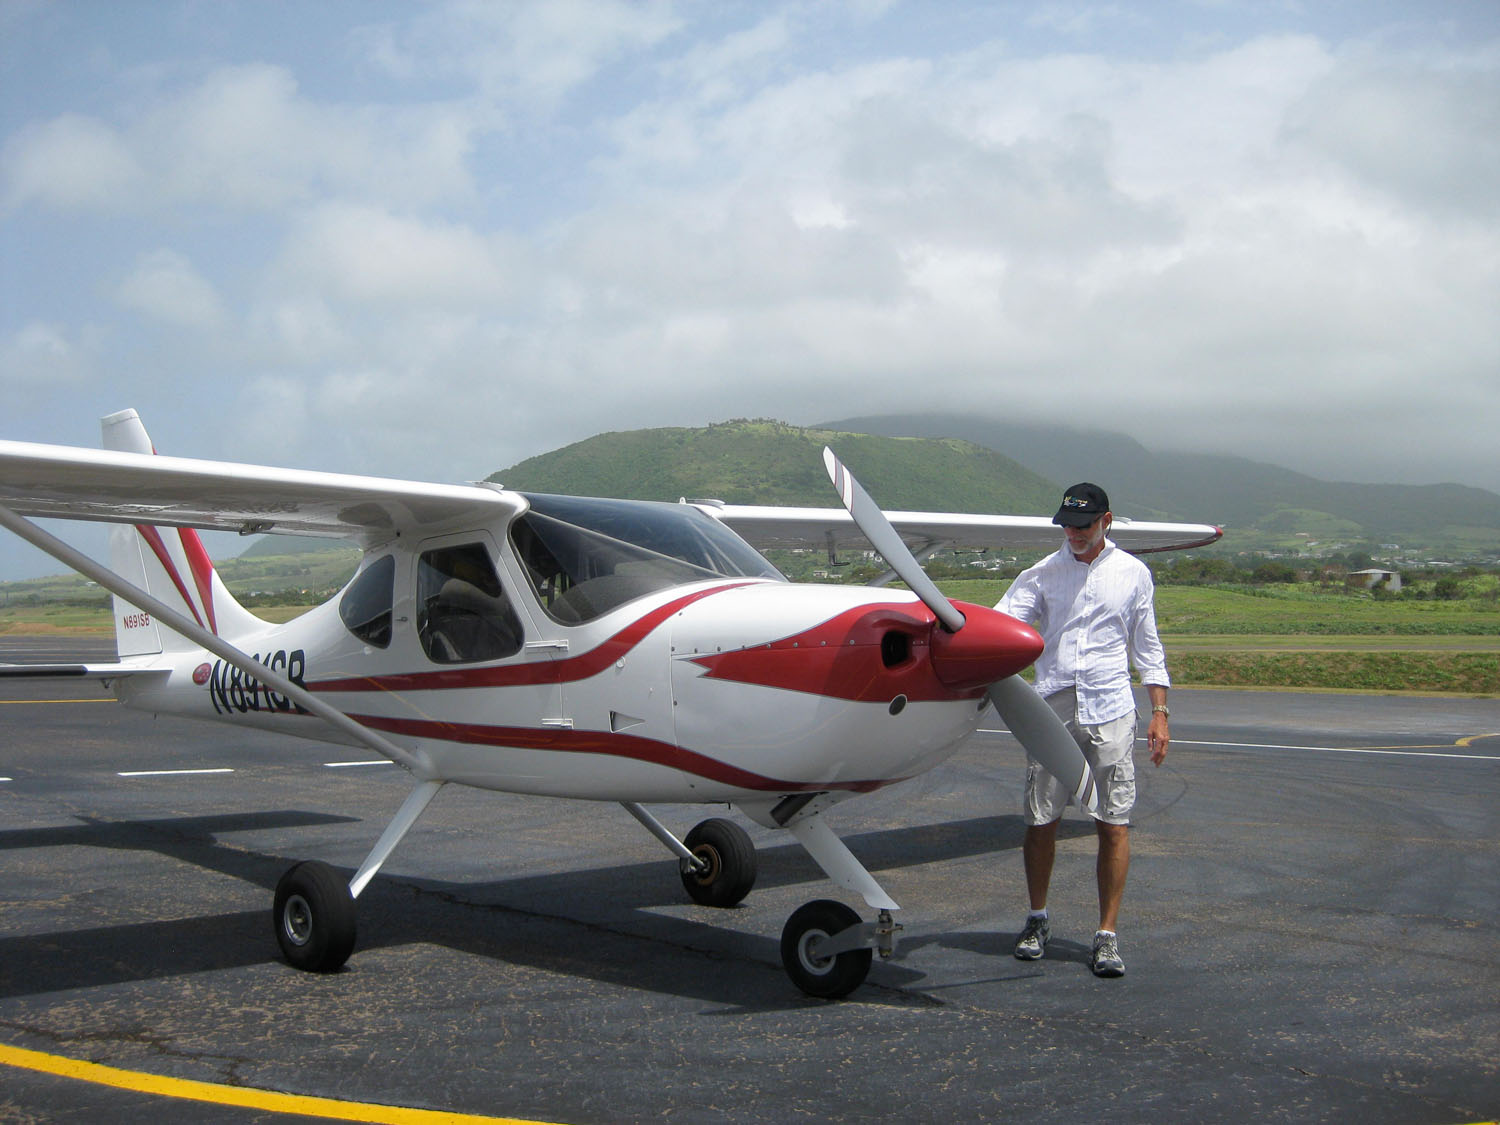 The pre-flight at St. Kitts